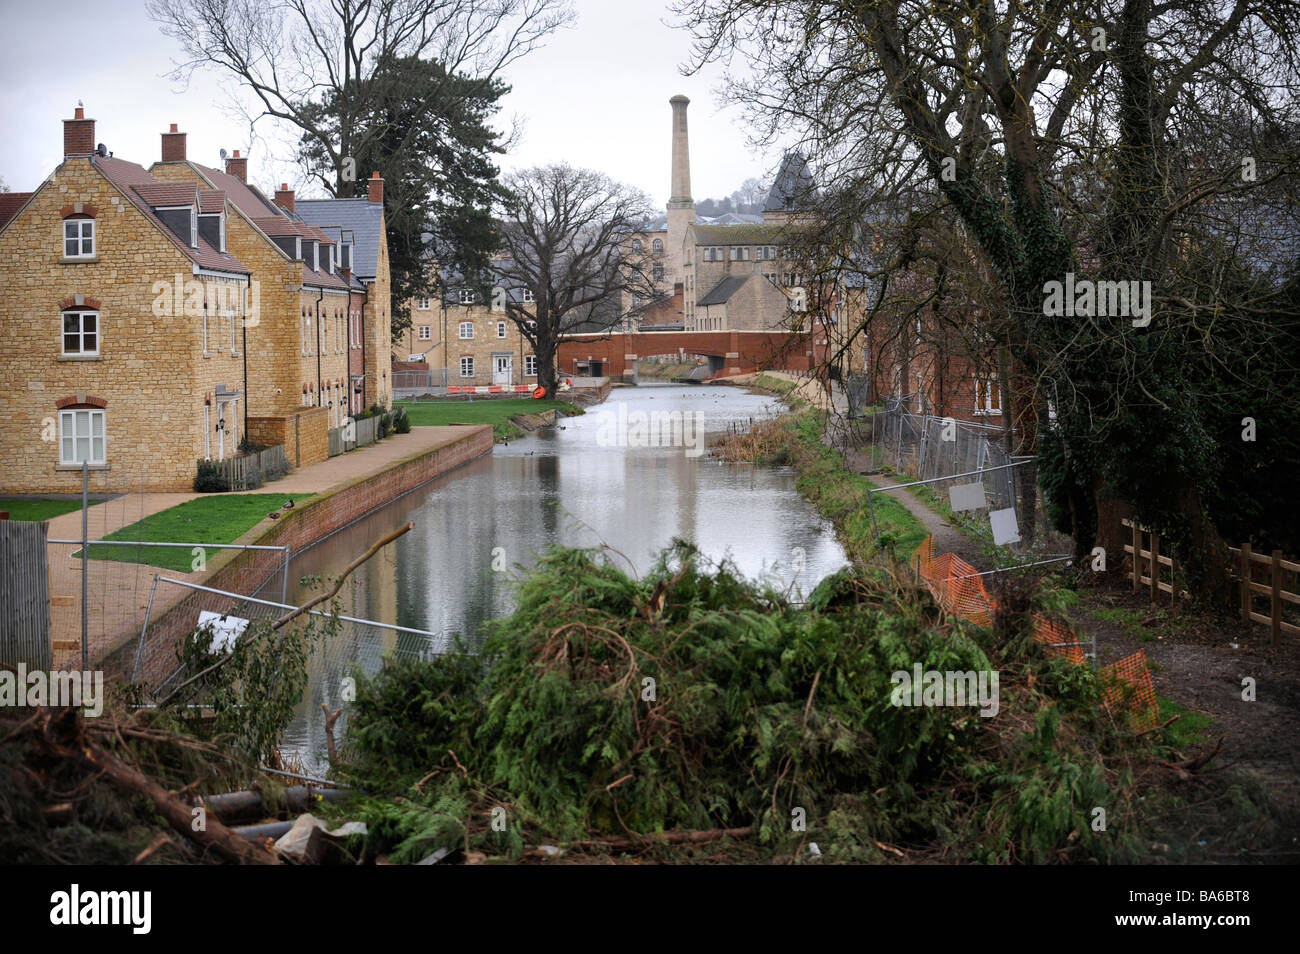 cotswold canal regeneration project These days, any self-respecting urban regeneration programme  at the heart of  the development is a new third canal, linking the  overall, cochrane says, there  are restoration schemes costing £60m, from the cotswolds to.